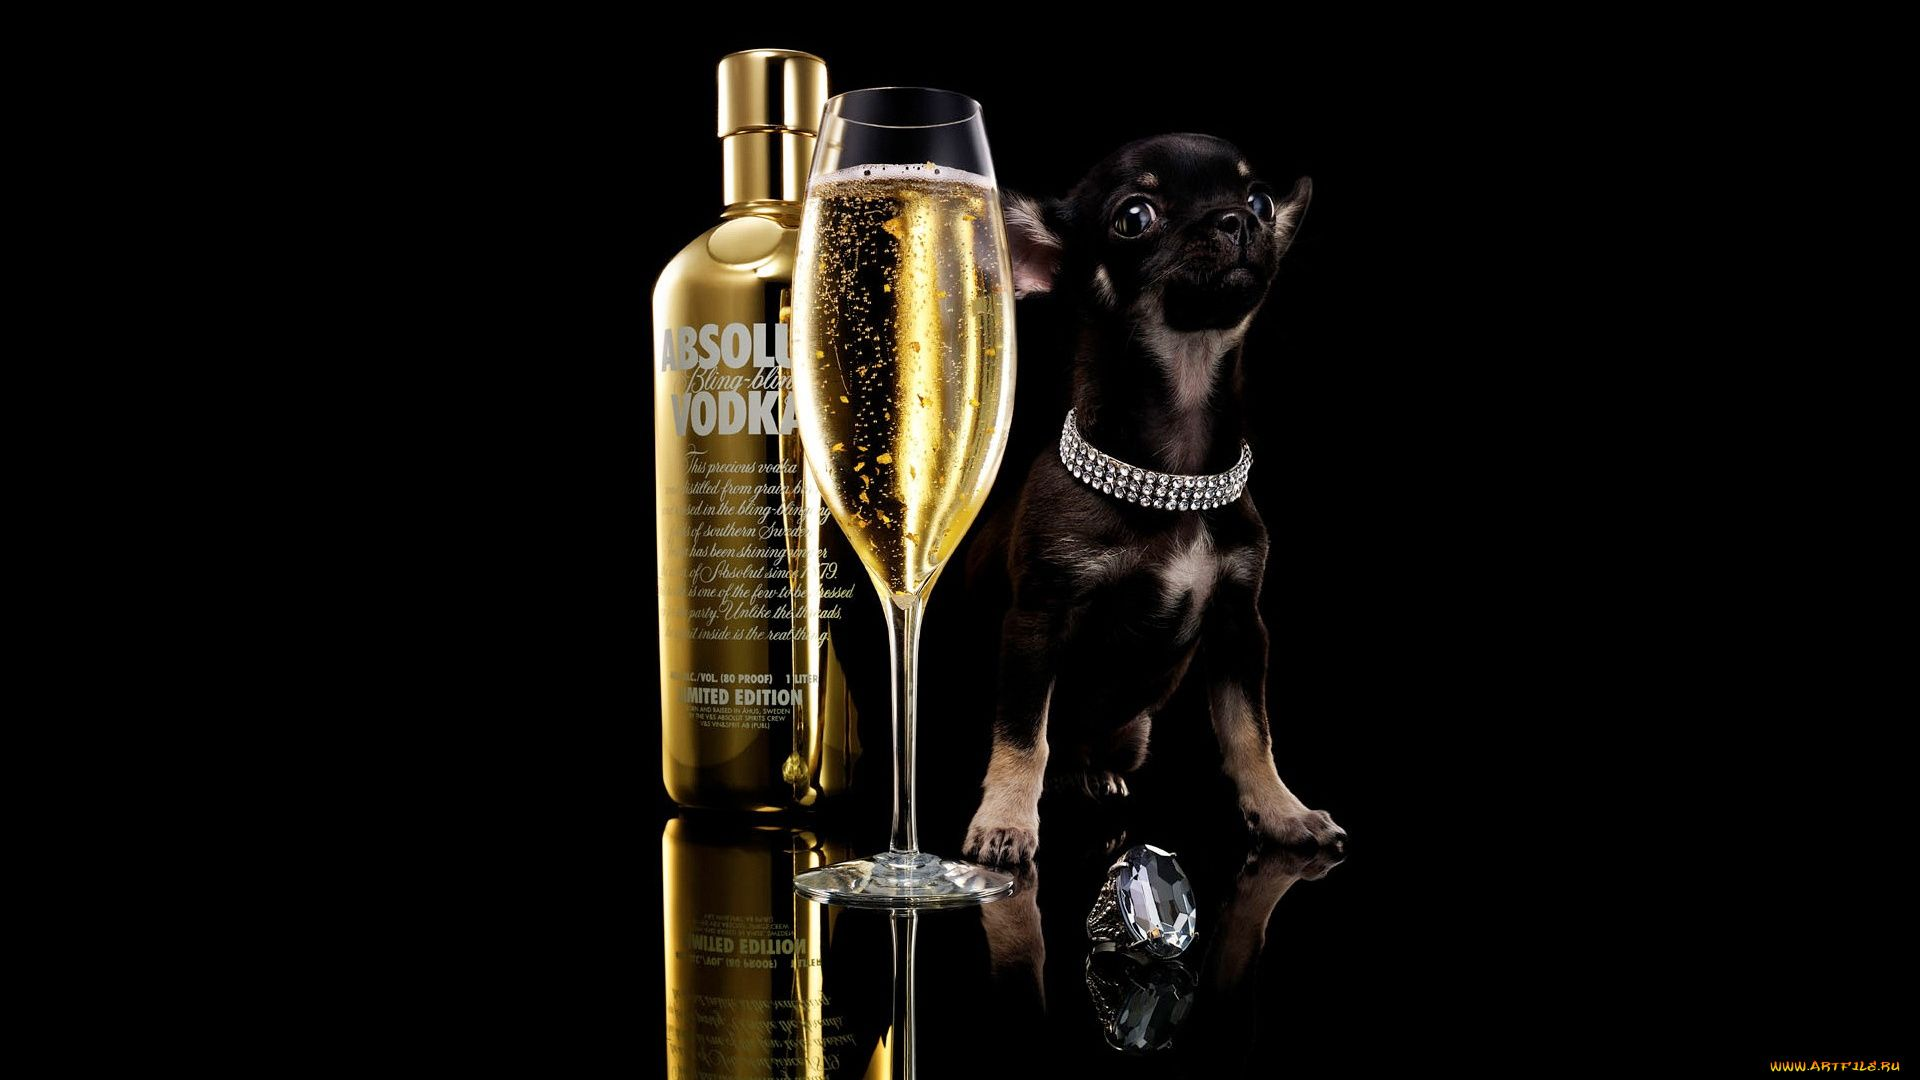 A Dog With Glass Of Vodka On Black Background